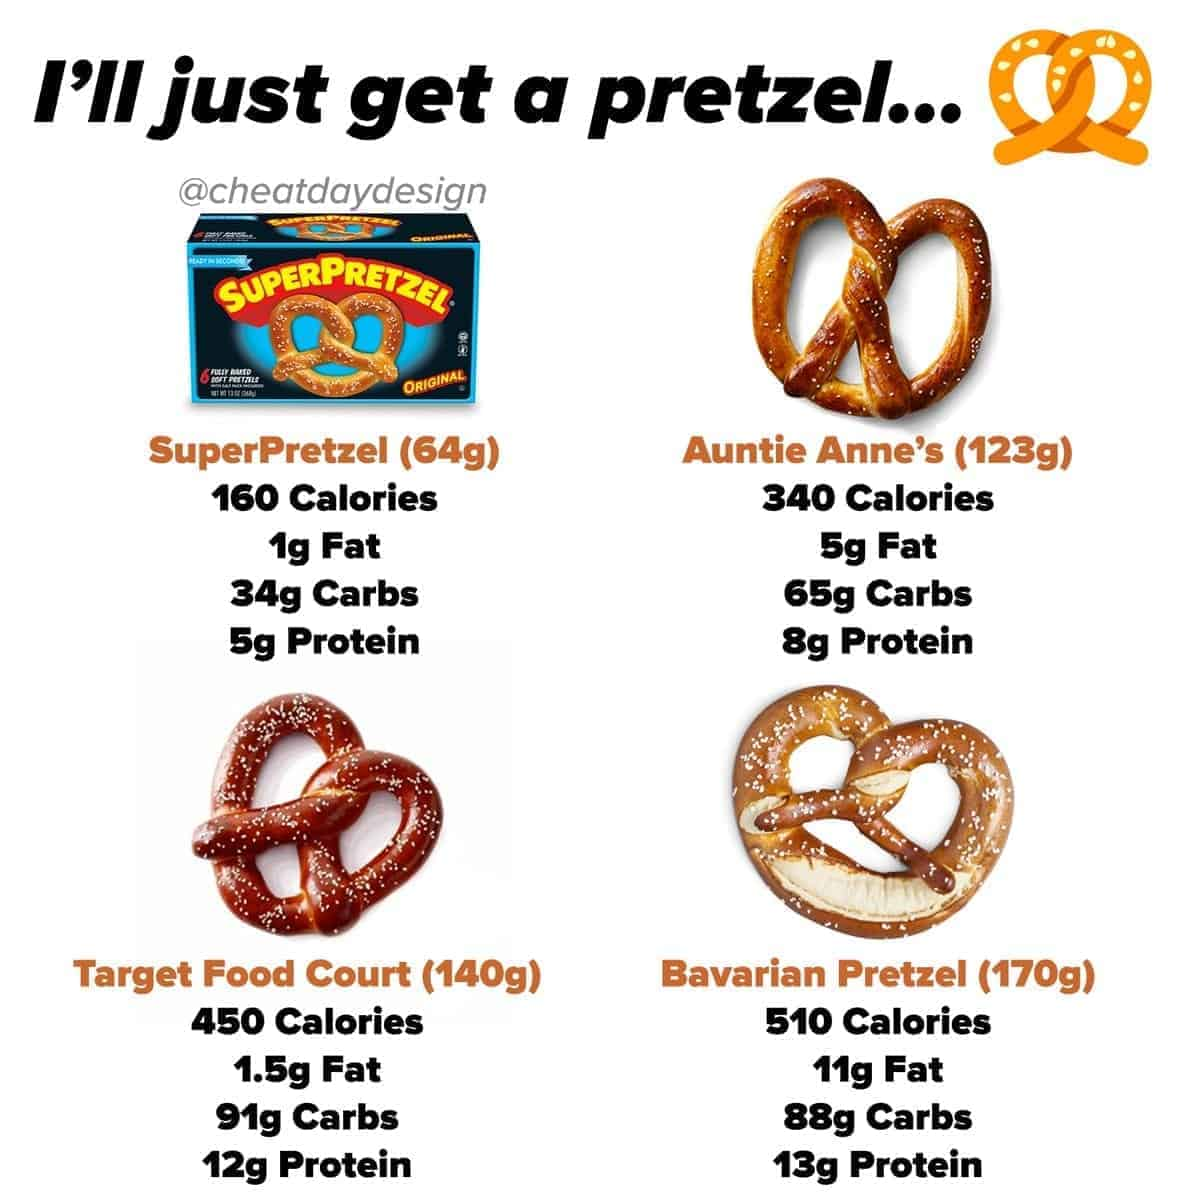 Comparing soft pretzel nutrition